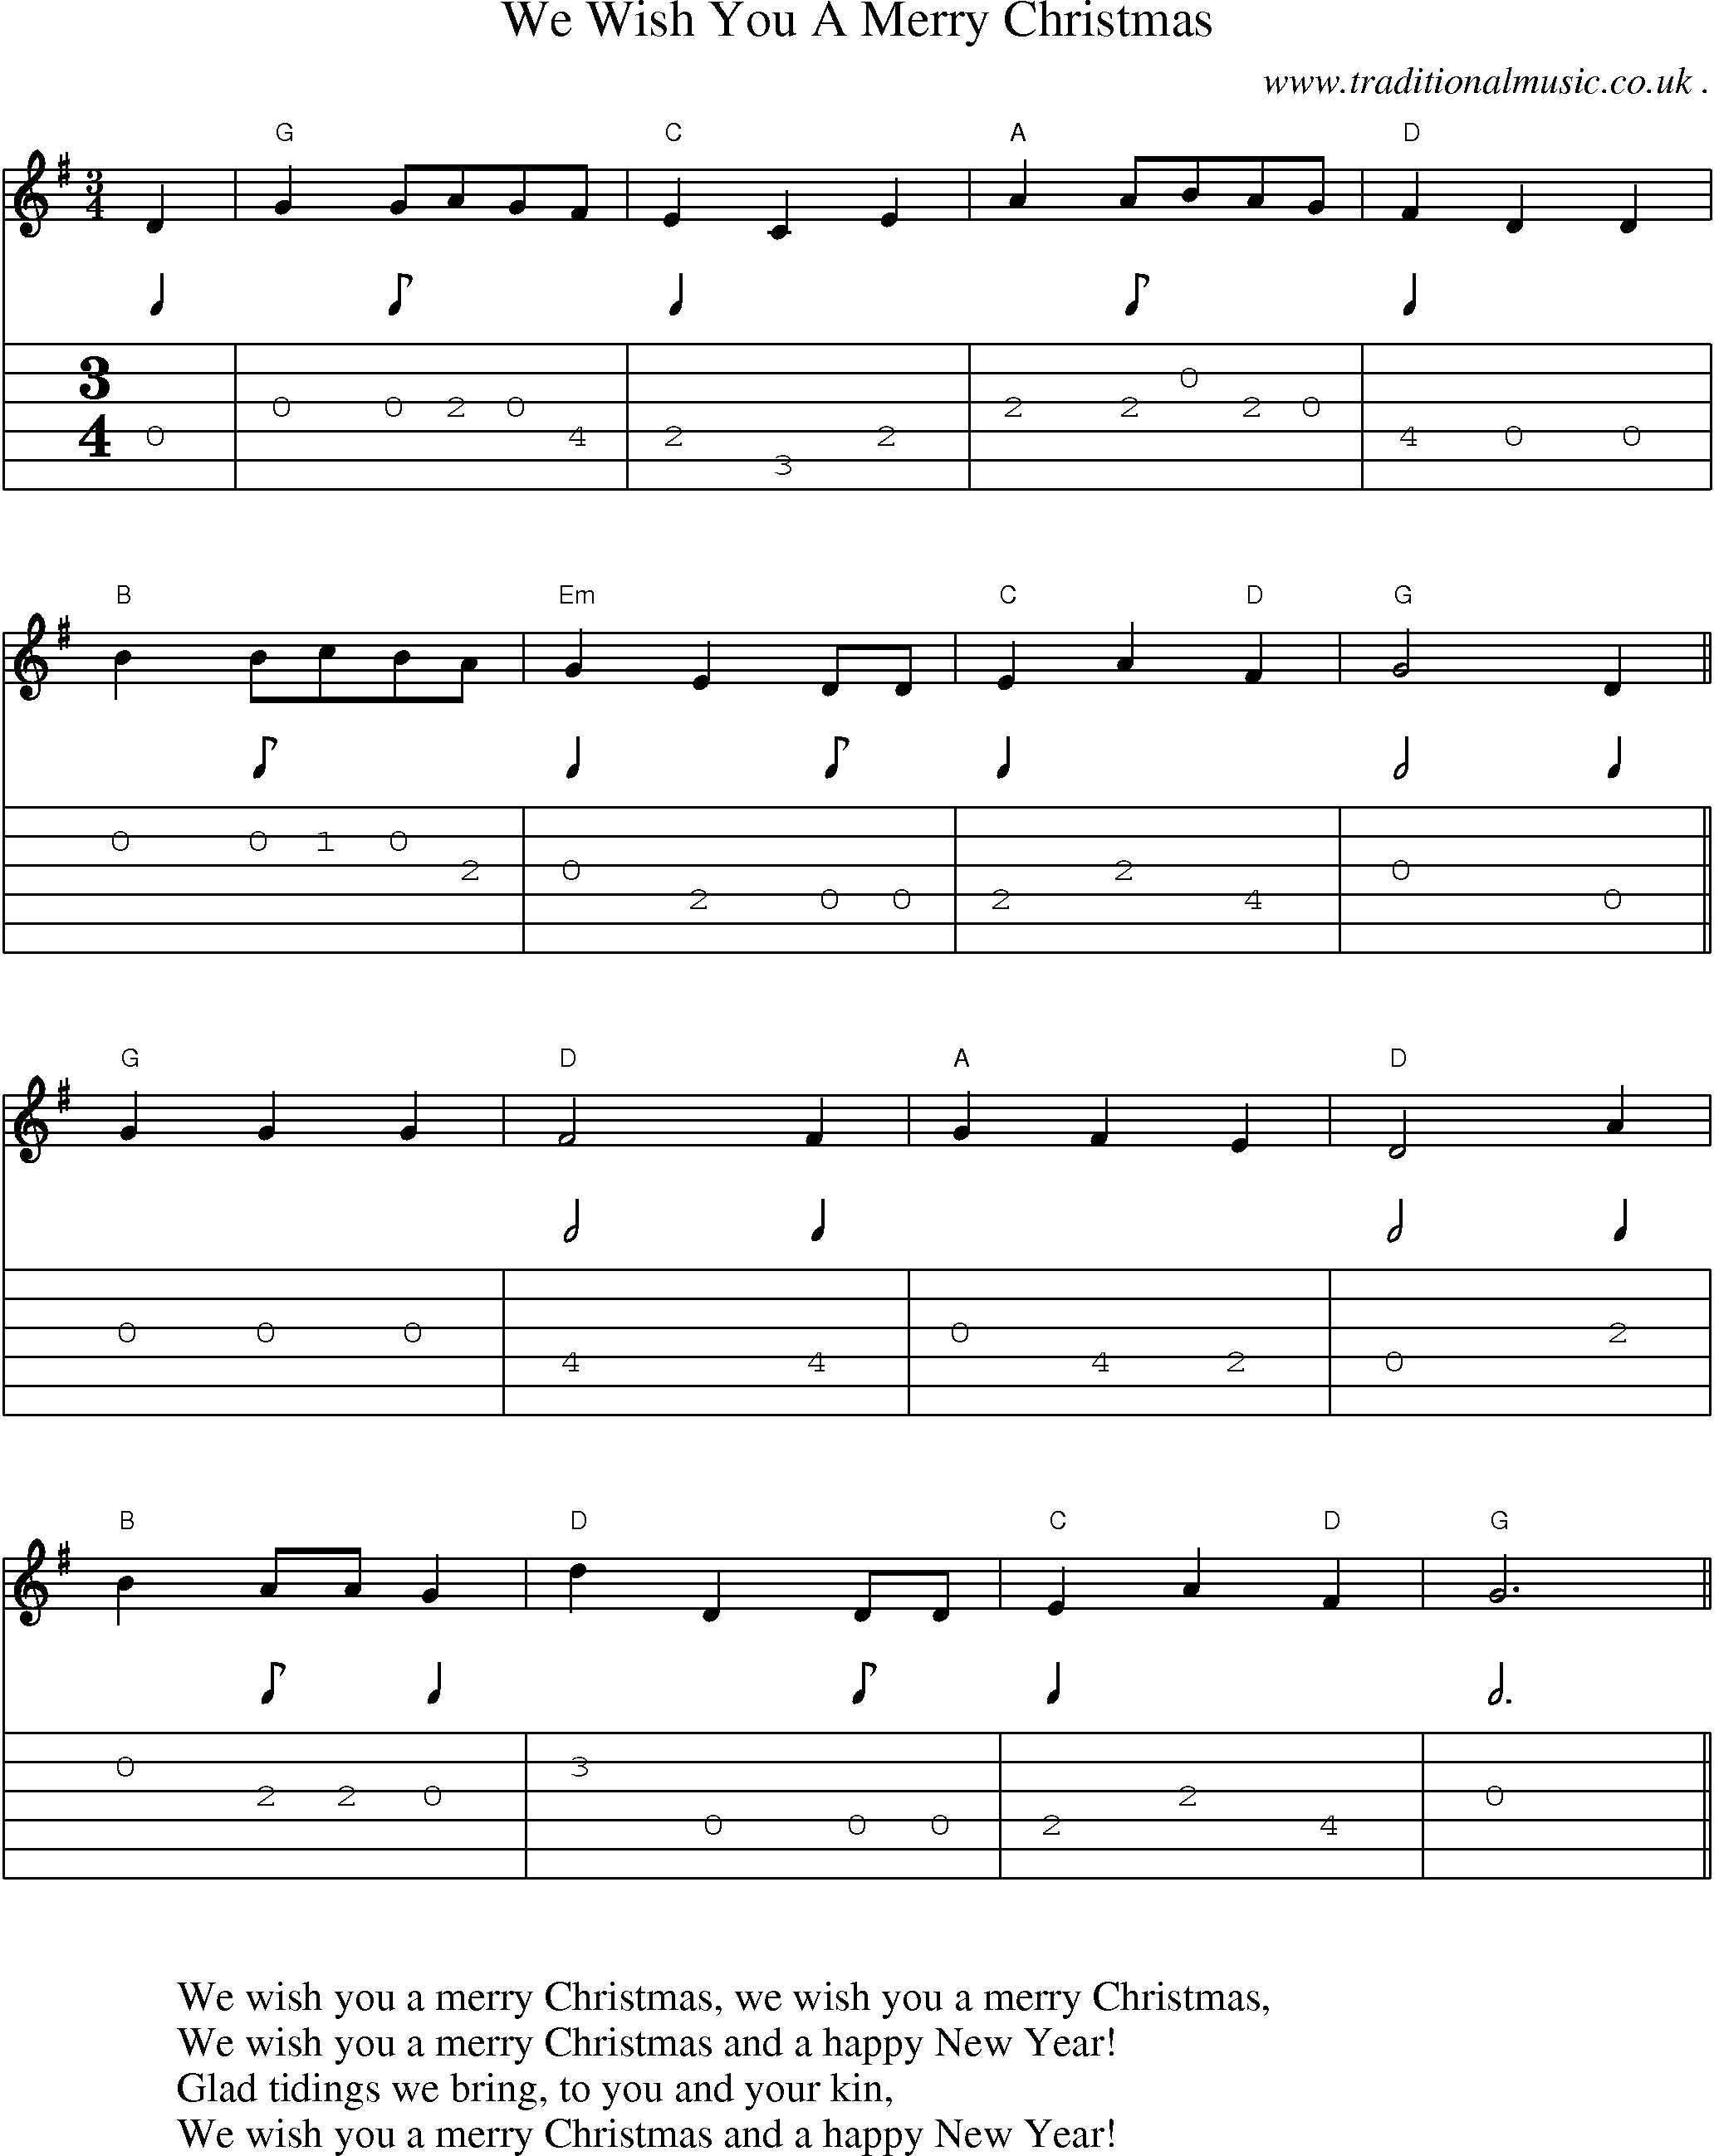 Music Score And Guitar Tabs For We Wish You A Merry Christmas